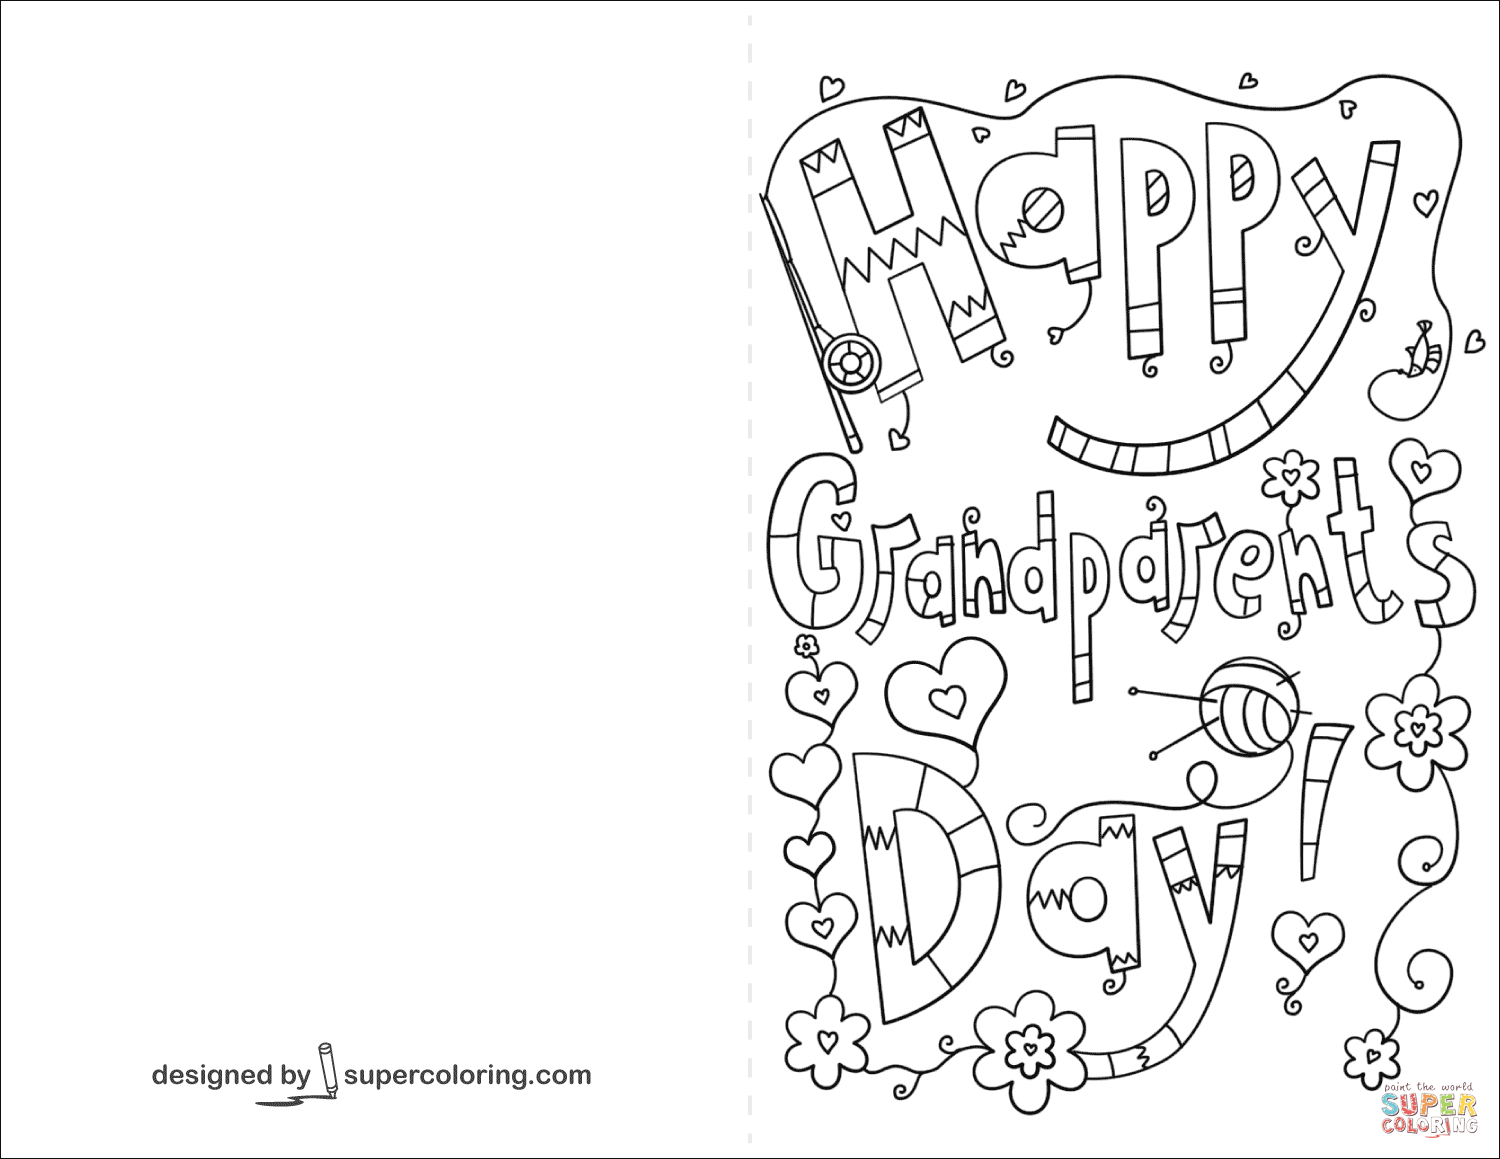 Grandparent's Day Coloring Pages   Free Coloring Pages - Grandparents Day Cards Printable Free